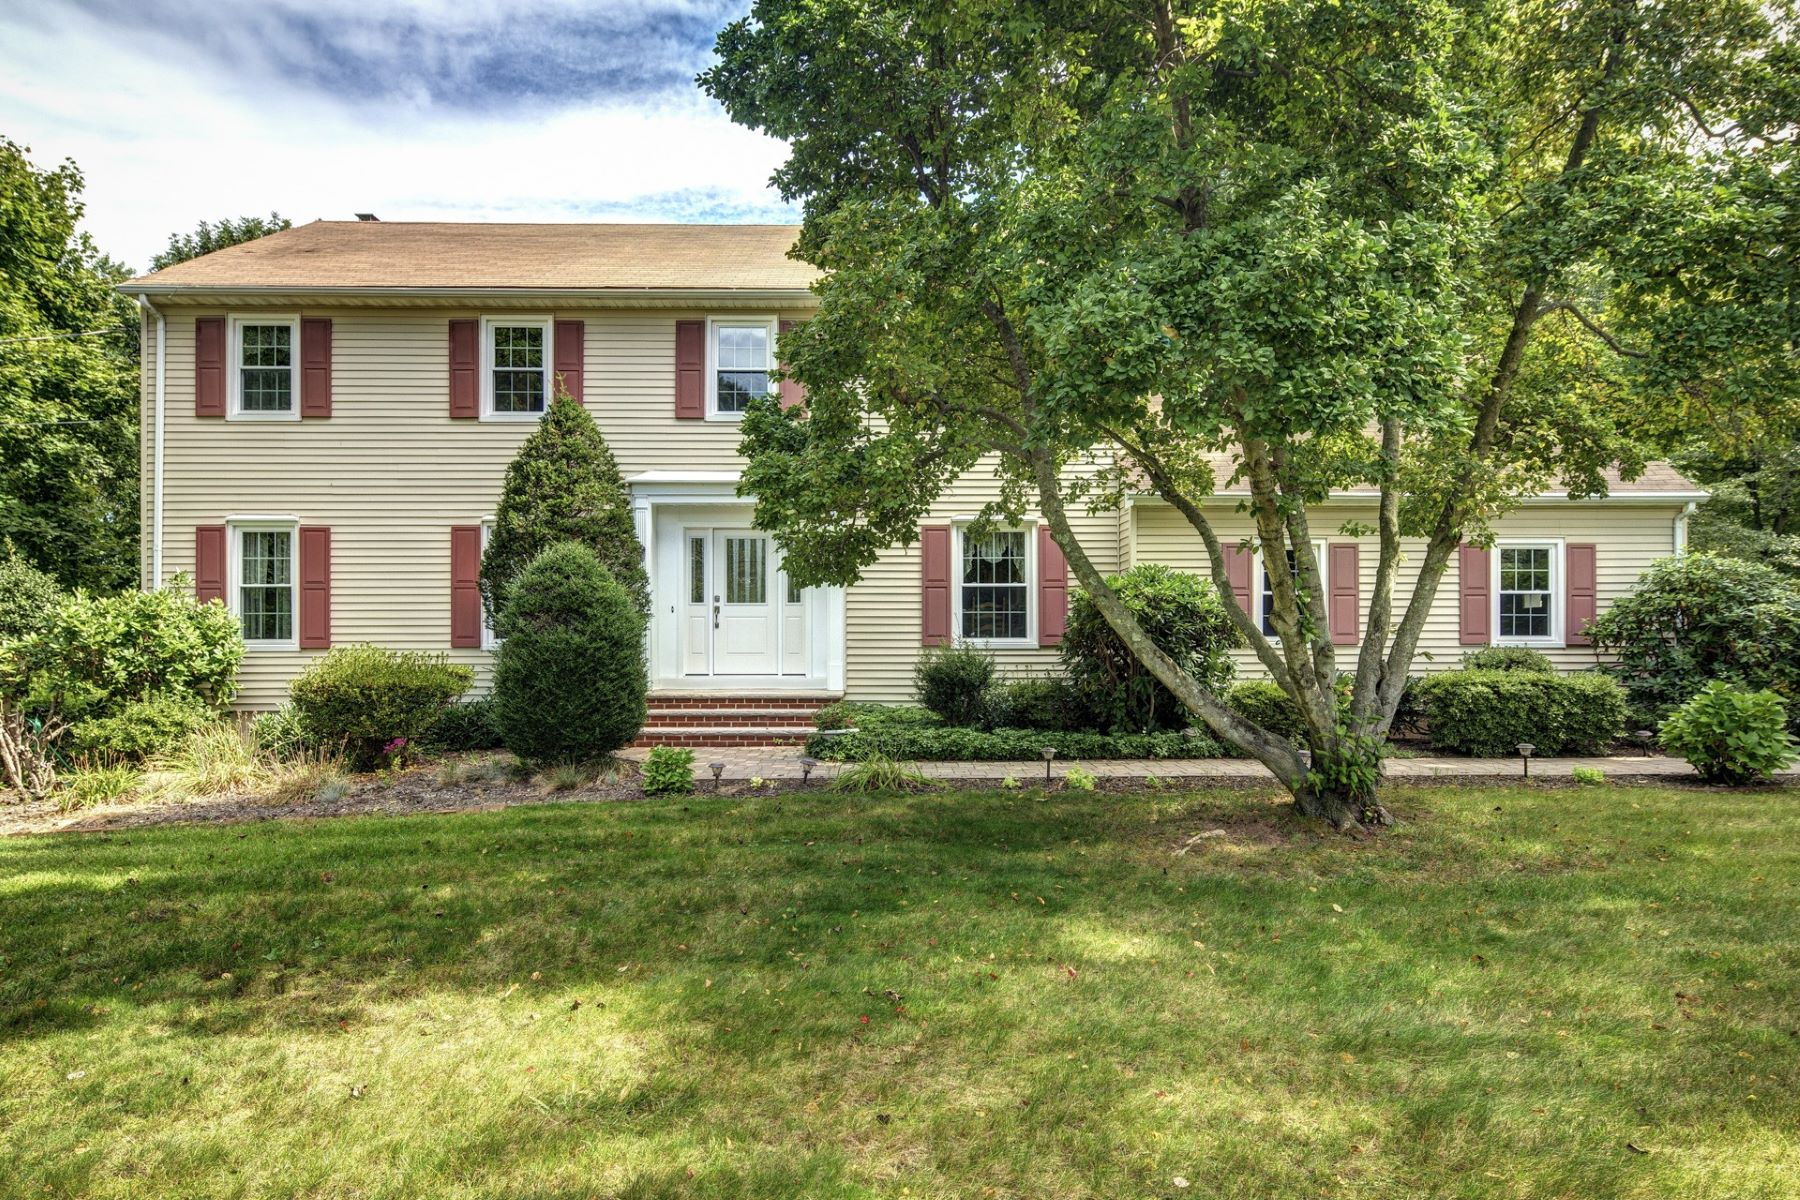 Single Family Home for Sale at 819 Tilton Pl, Middletown 819 Tilton Pl. Middletown, New Jersey, 07748 United States